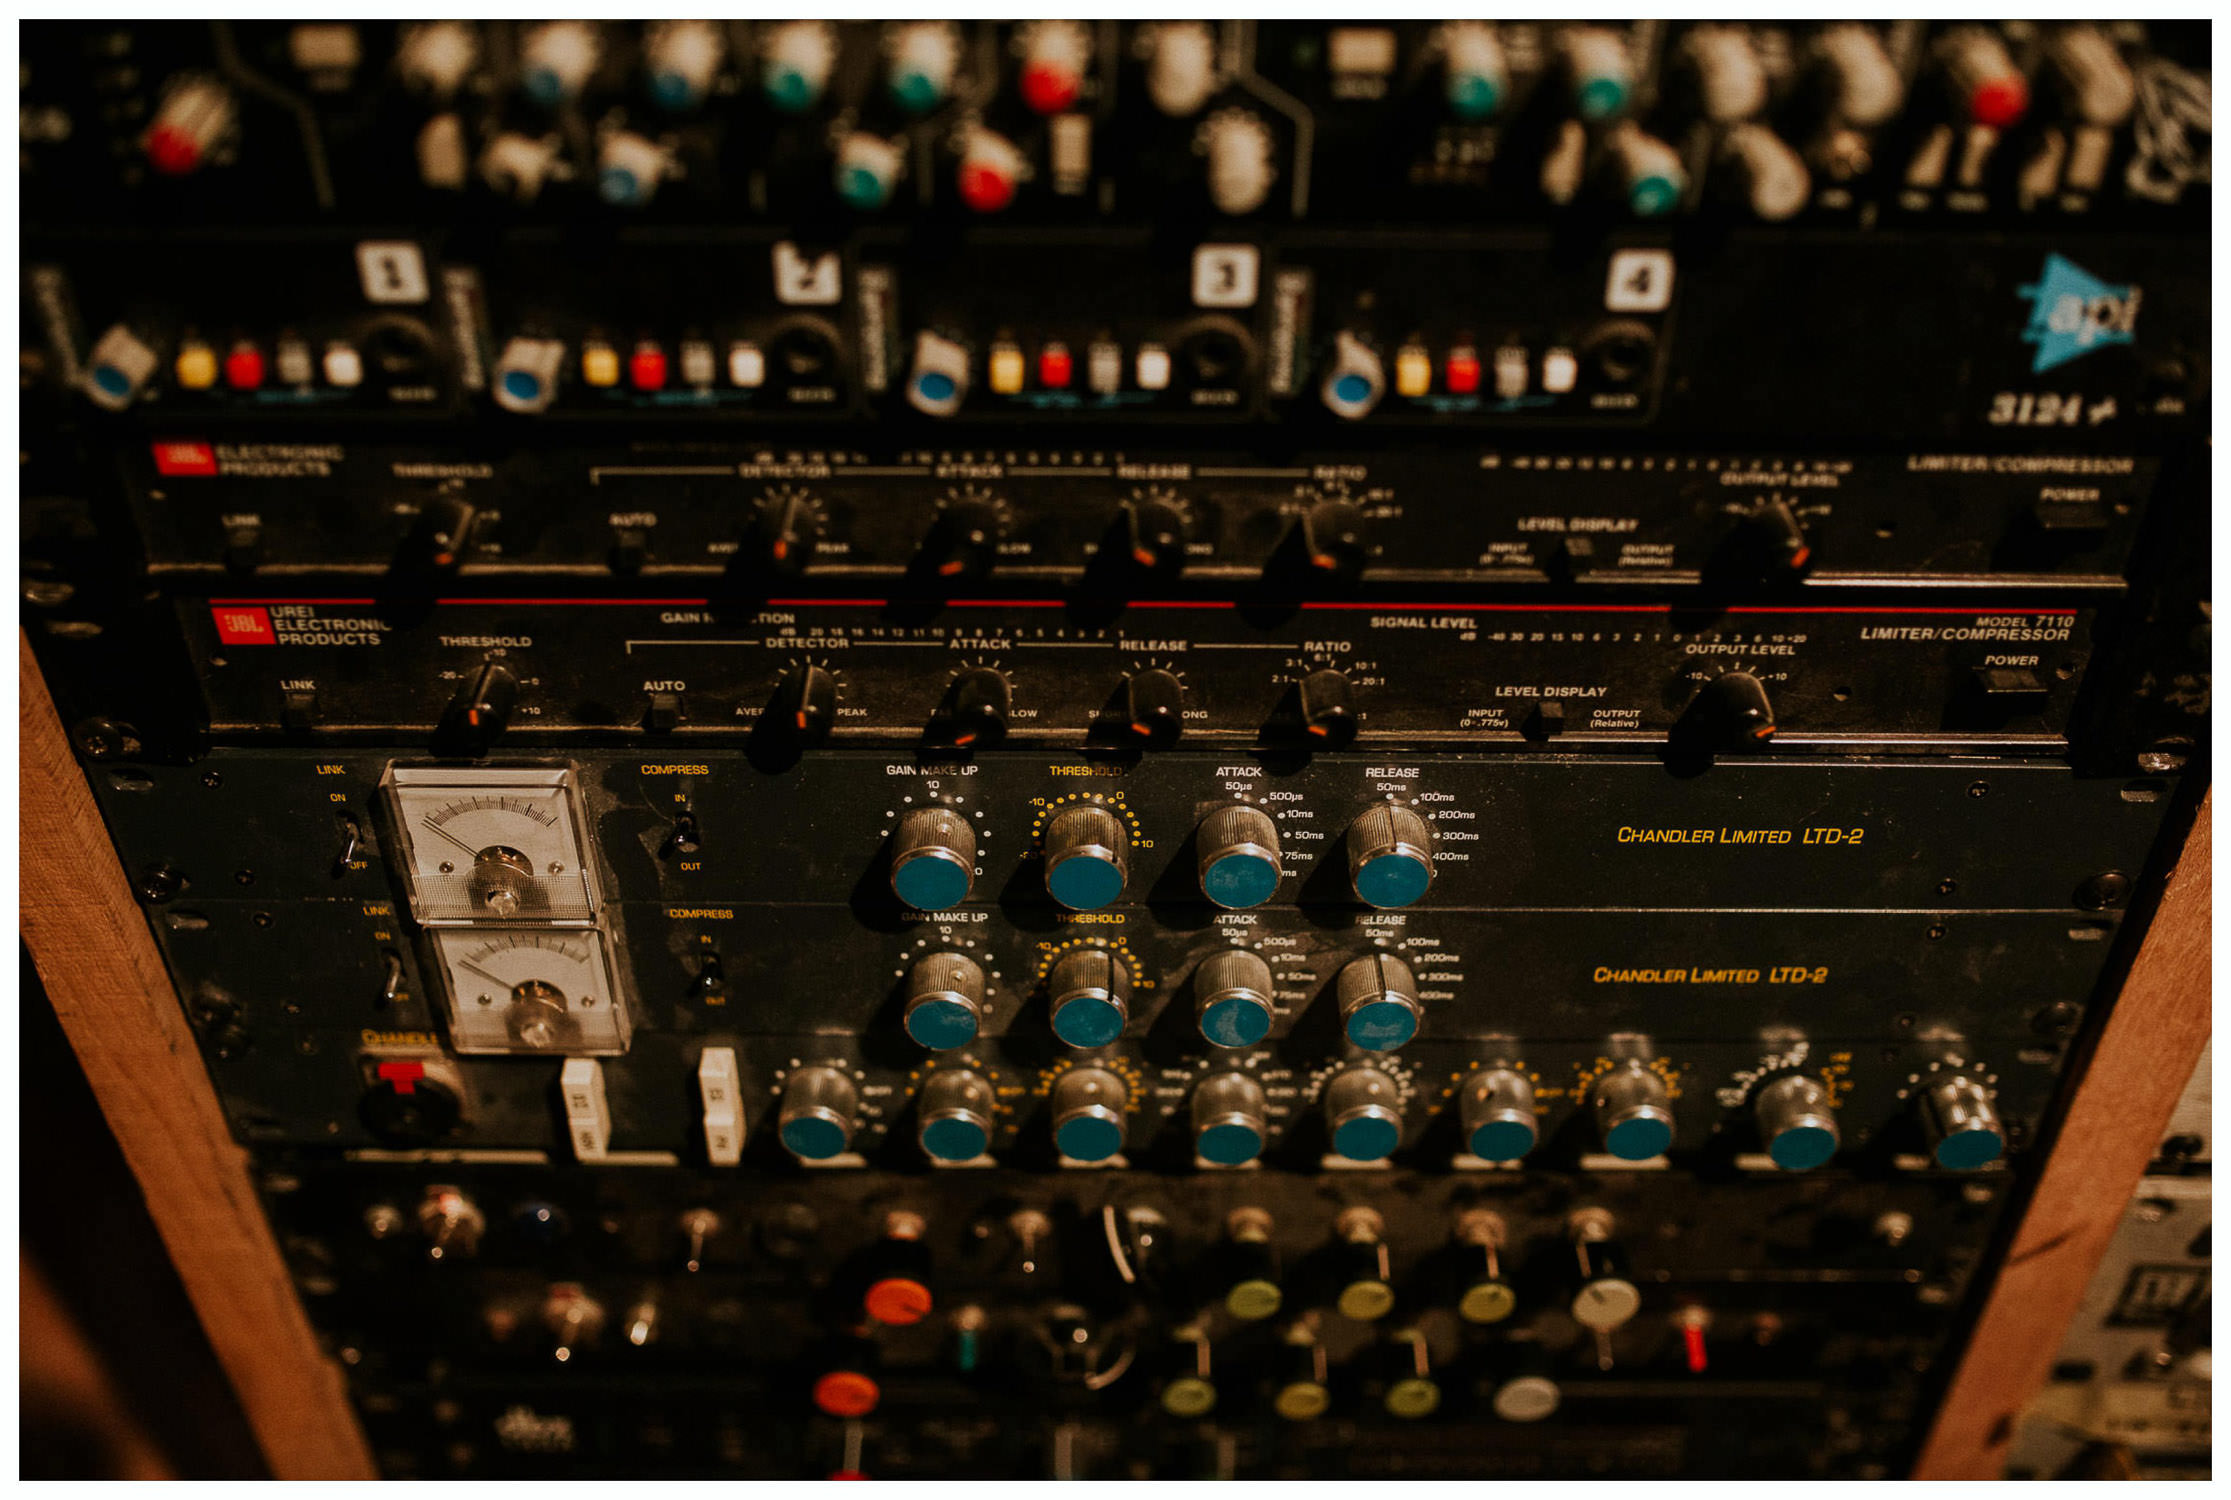 buttons and lights in a recording studio